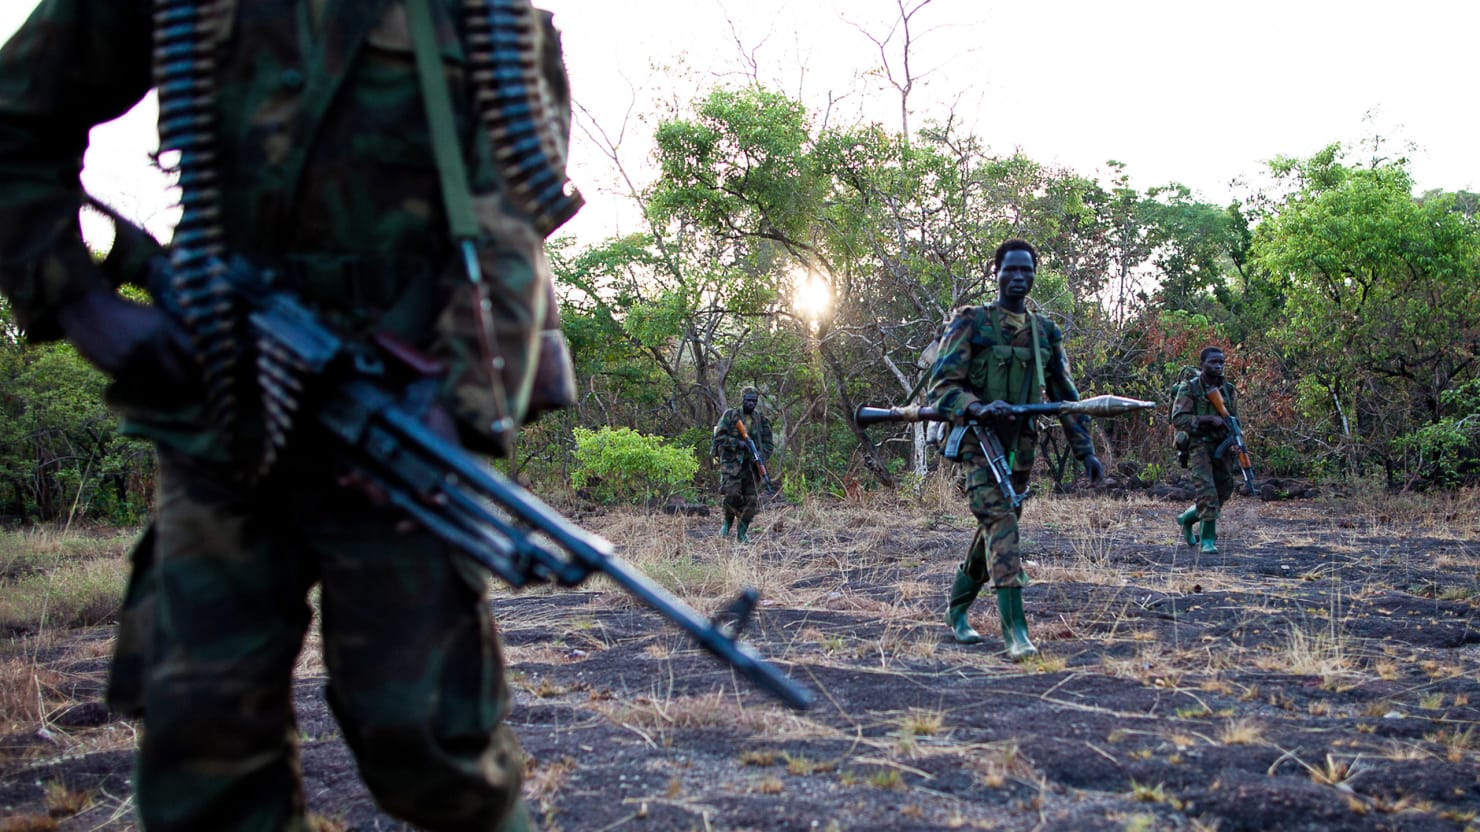 Joseph Kony Gets a Break as U.S. and African Forces Stop Their Search